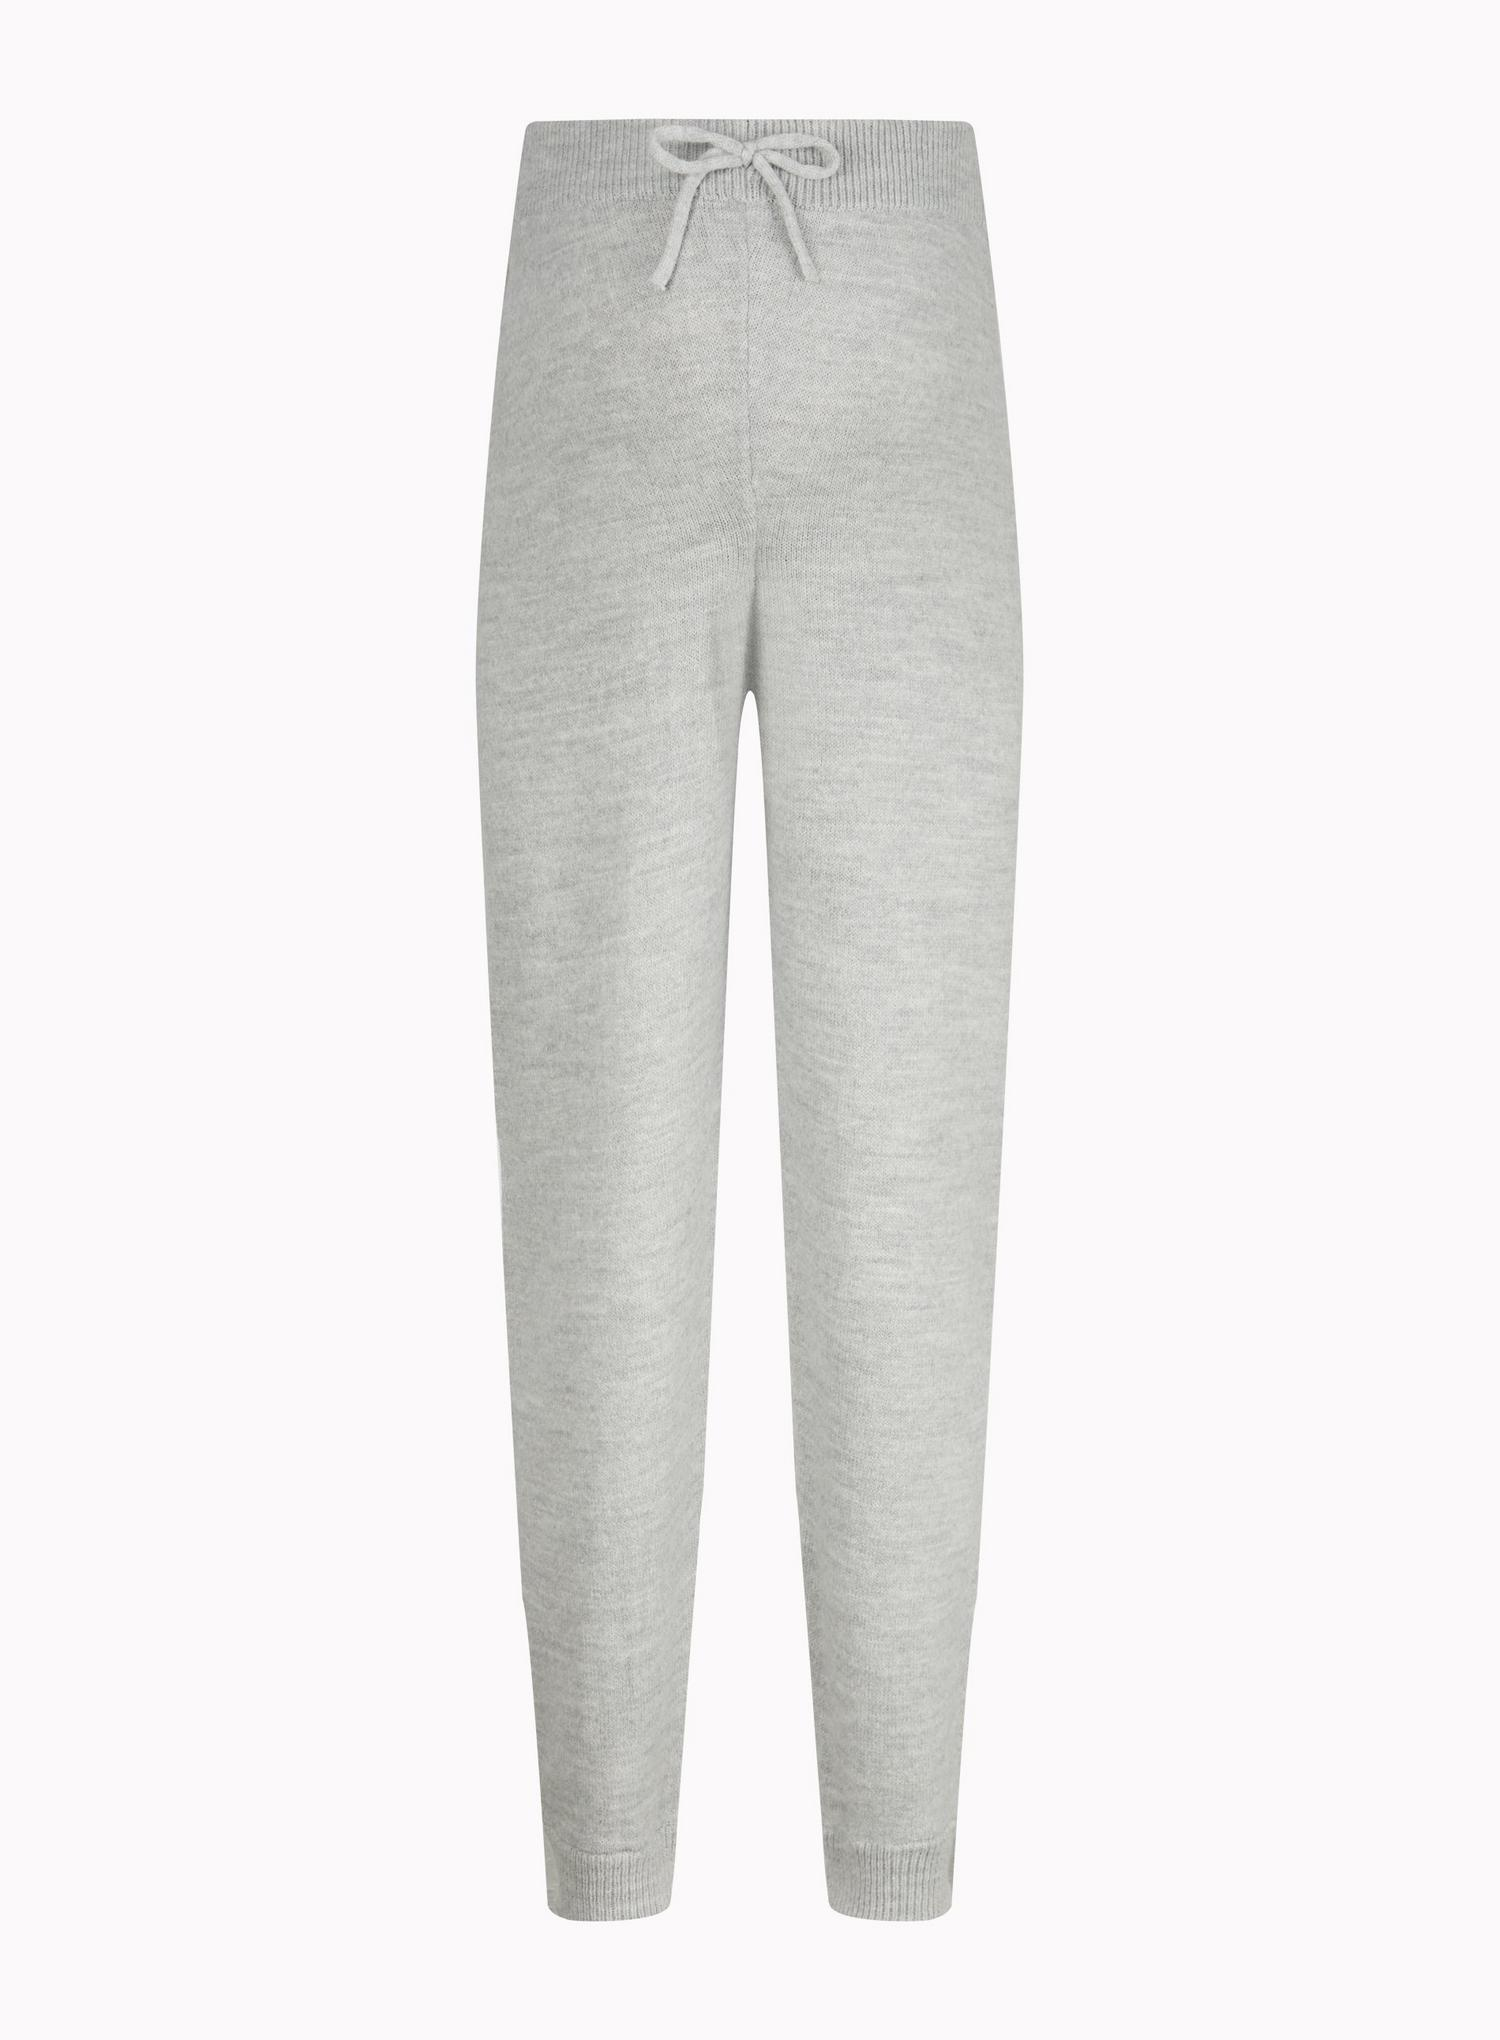 131 Maternity Grey Joggers image number 2